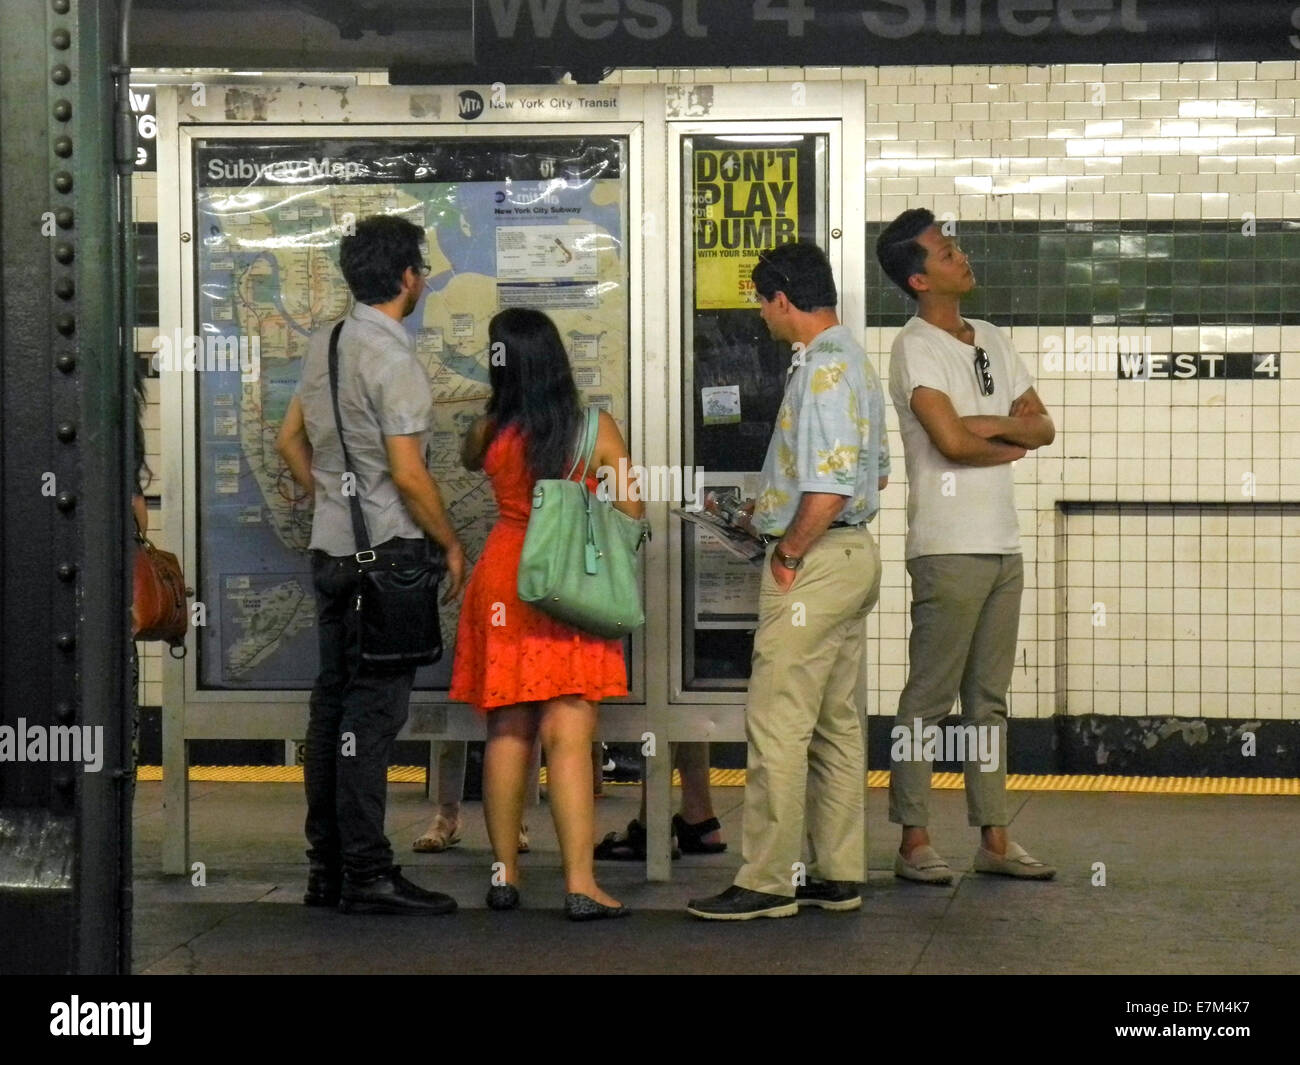 Subway Map Manhattan With Streets.Asian American Tourists In New York City Read A Subway Map At West